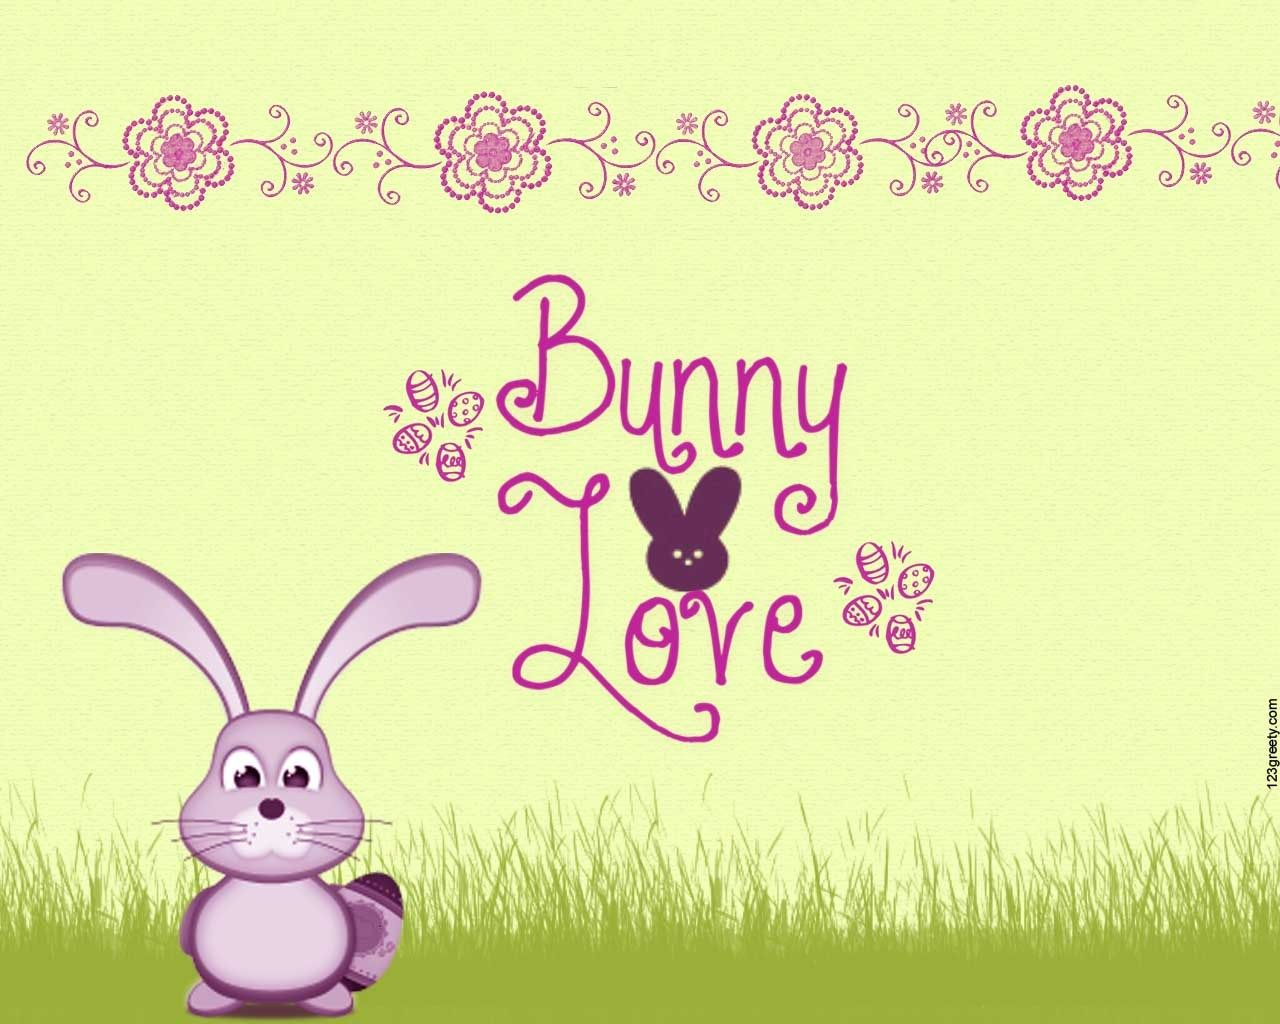 Funny valentine happy easter messages for friends easter greetings funny valentine happy easter messages for friends easter greetings kristyandbryce Choice Image